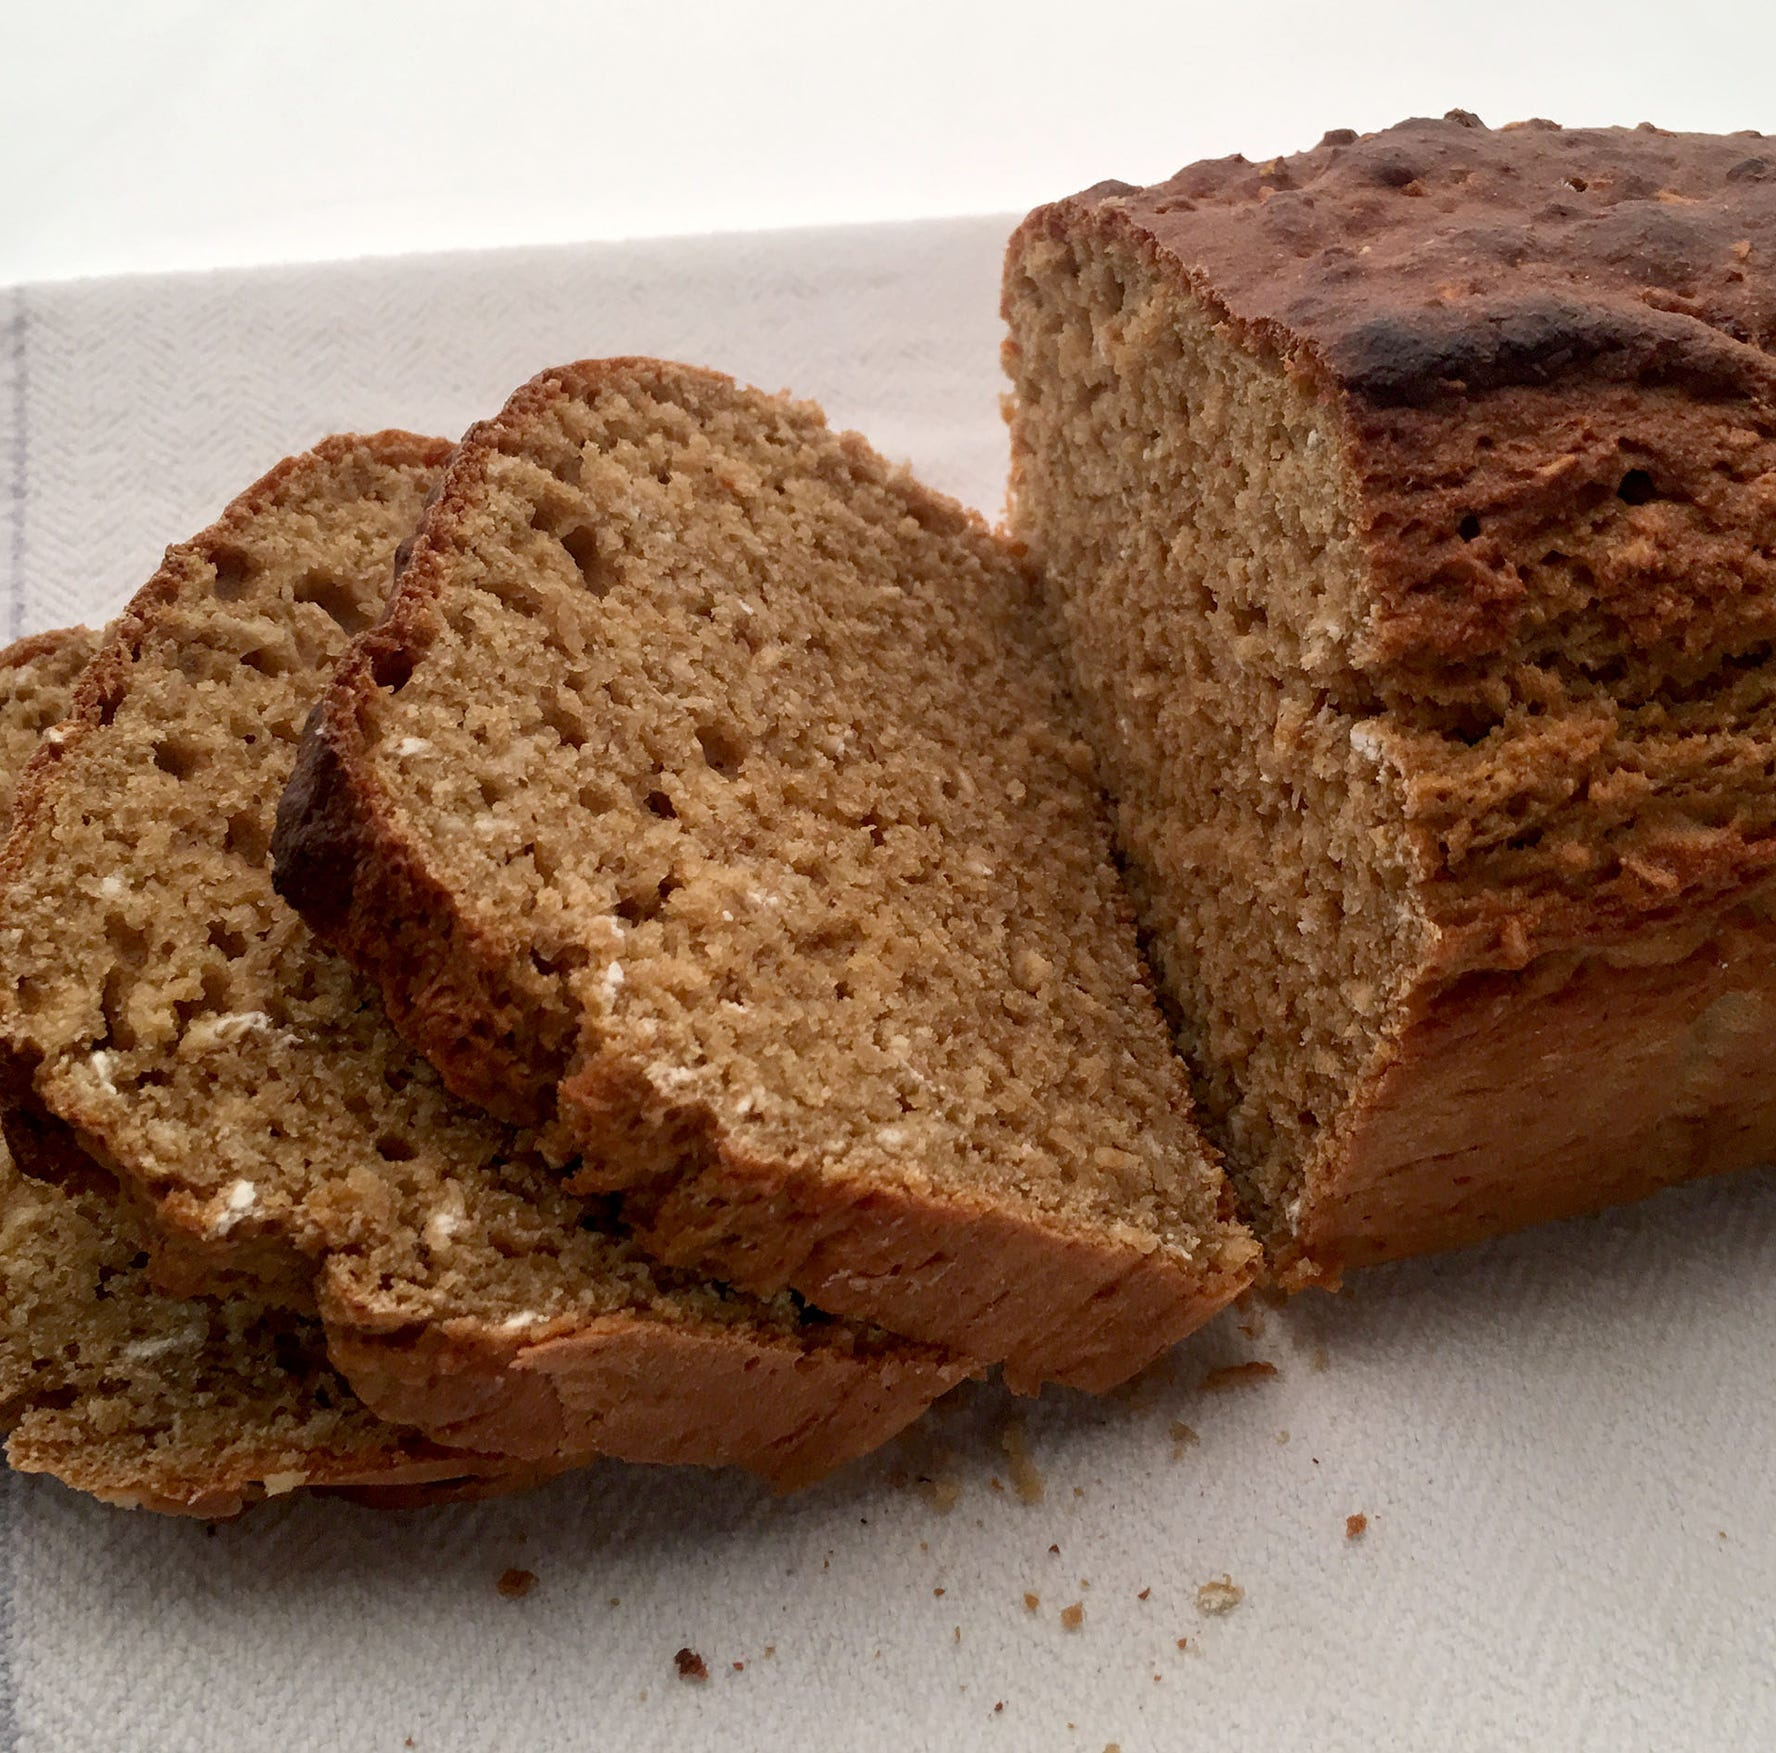 Boost fiber in beer bread by using whole-wheat flour